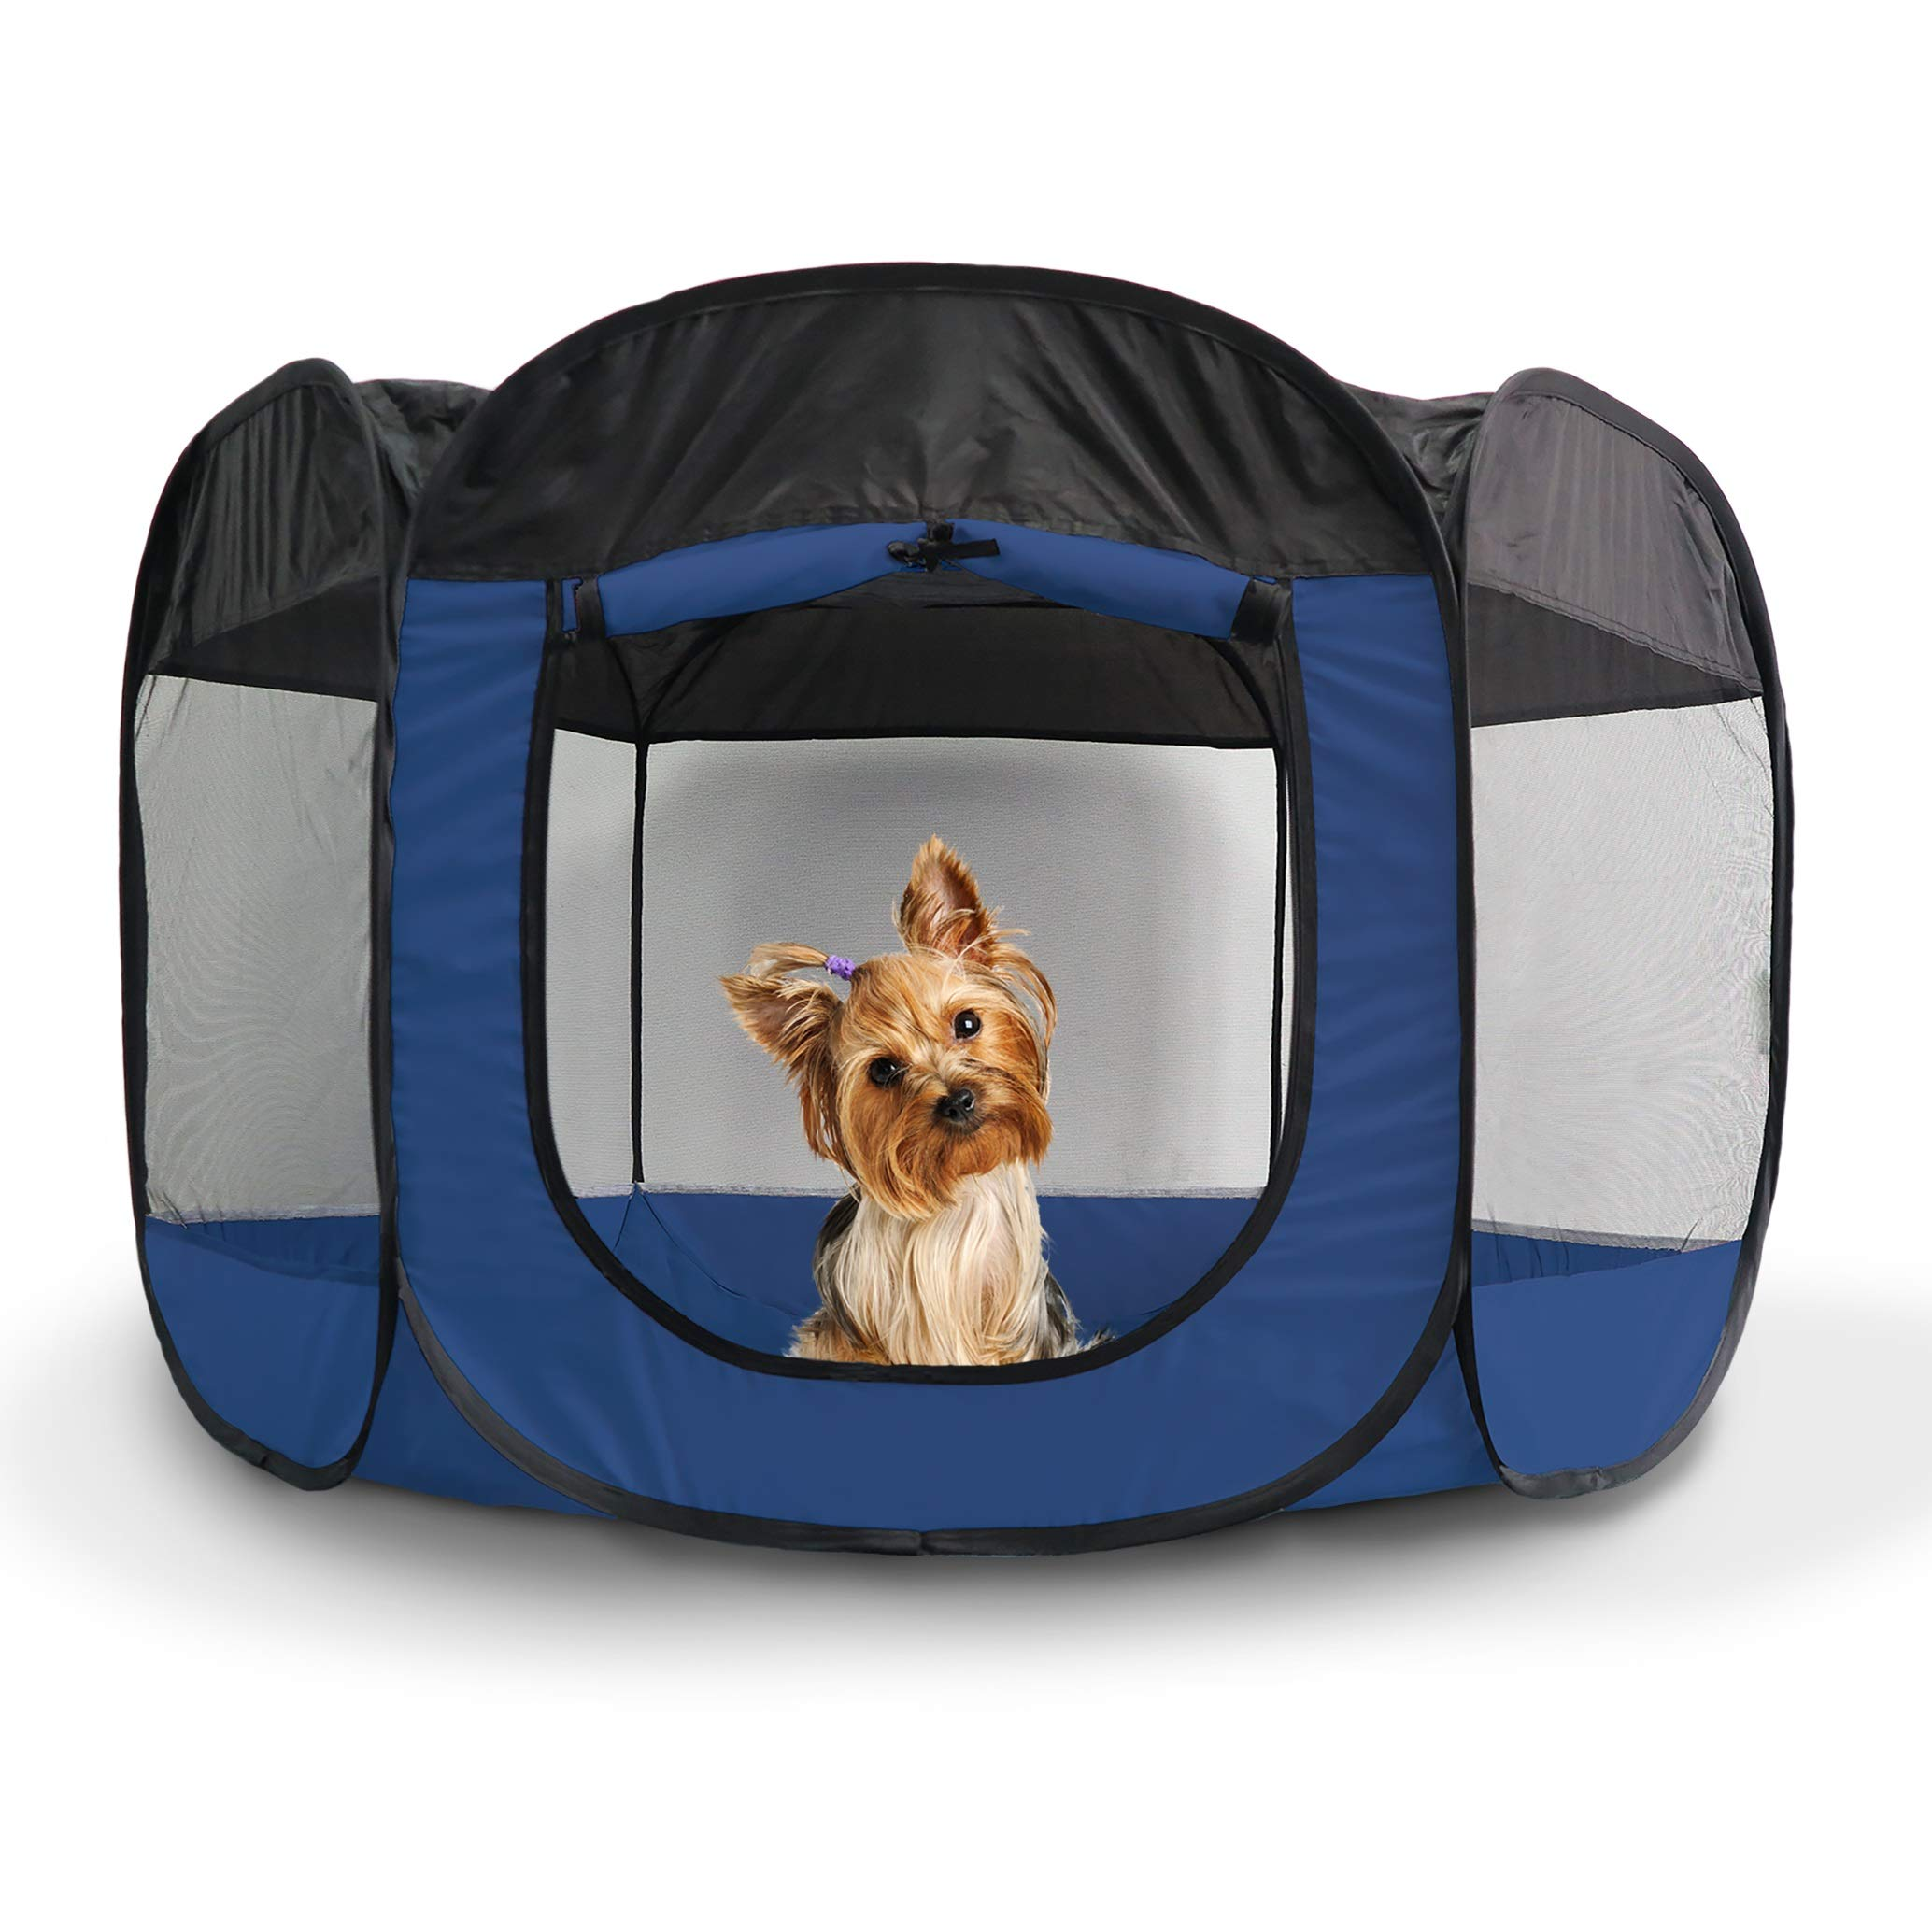 Furhaven Pet Playpen - Indoor/Outdoor Mesh Open-Air Playpen & Exercise Pen Tent House Playground for Dogs & Cats, Sailor Blue, Small